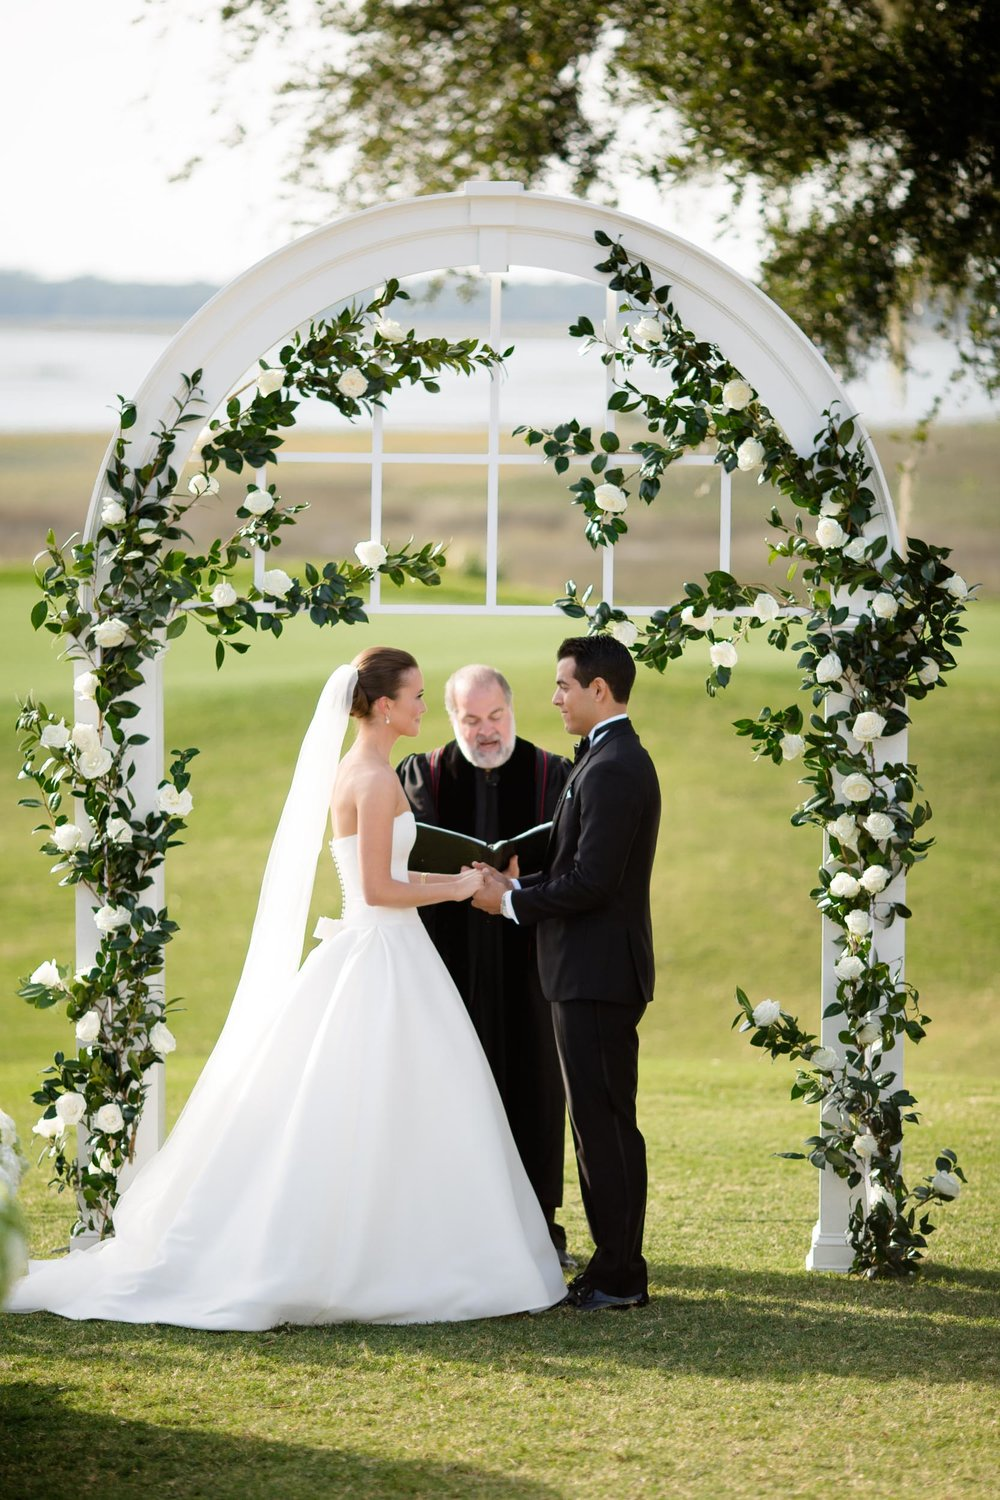 Floral wedding ceremony arch for Kiawah Island wedding.